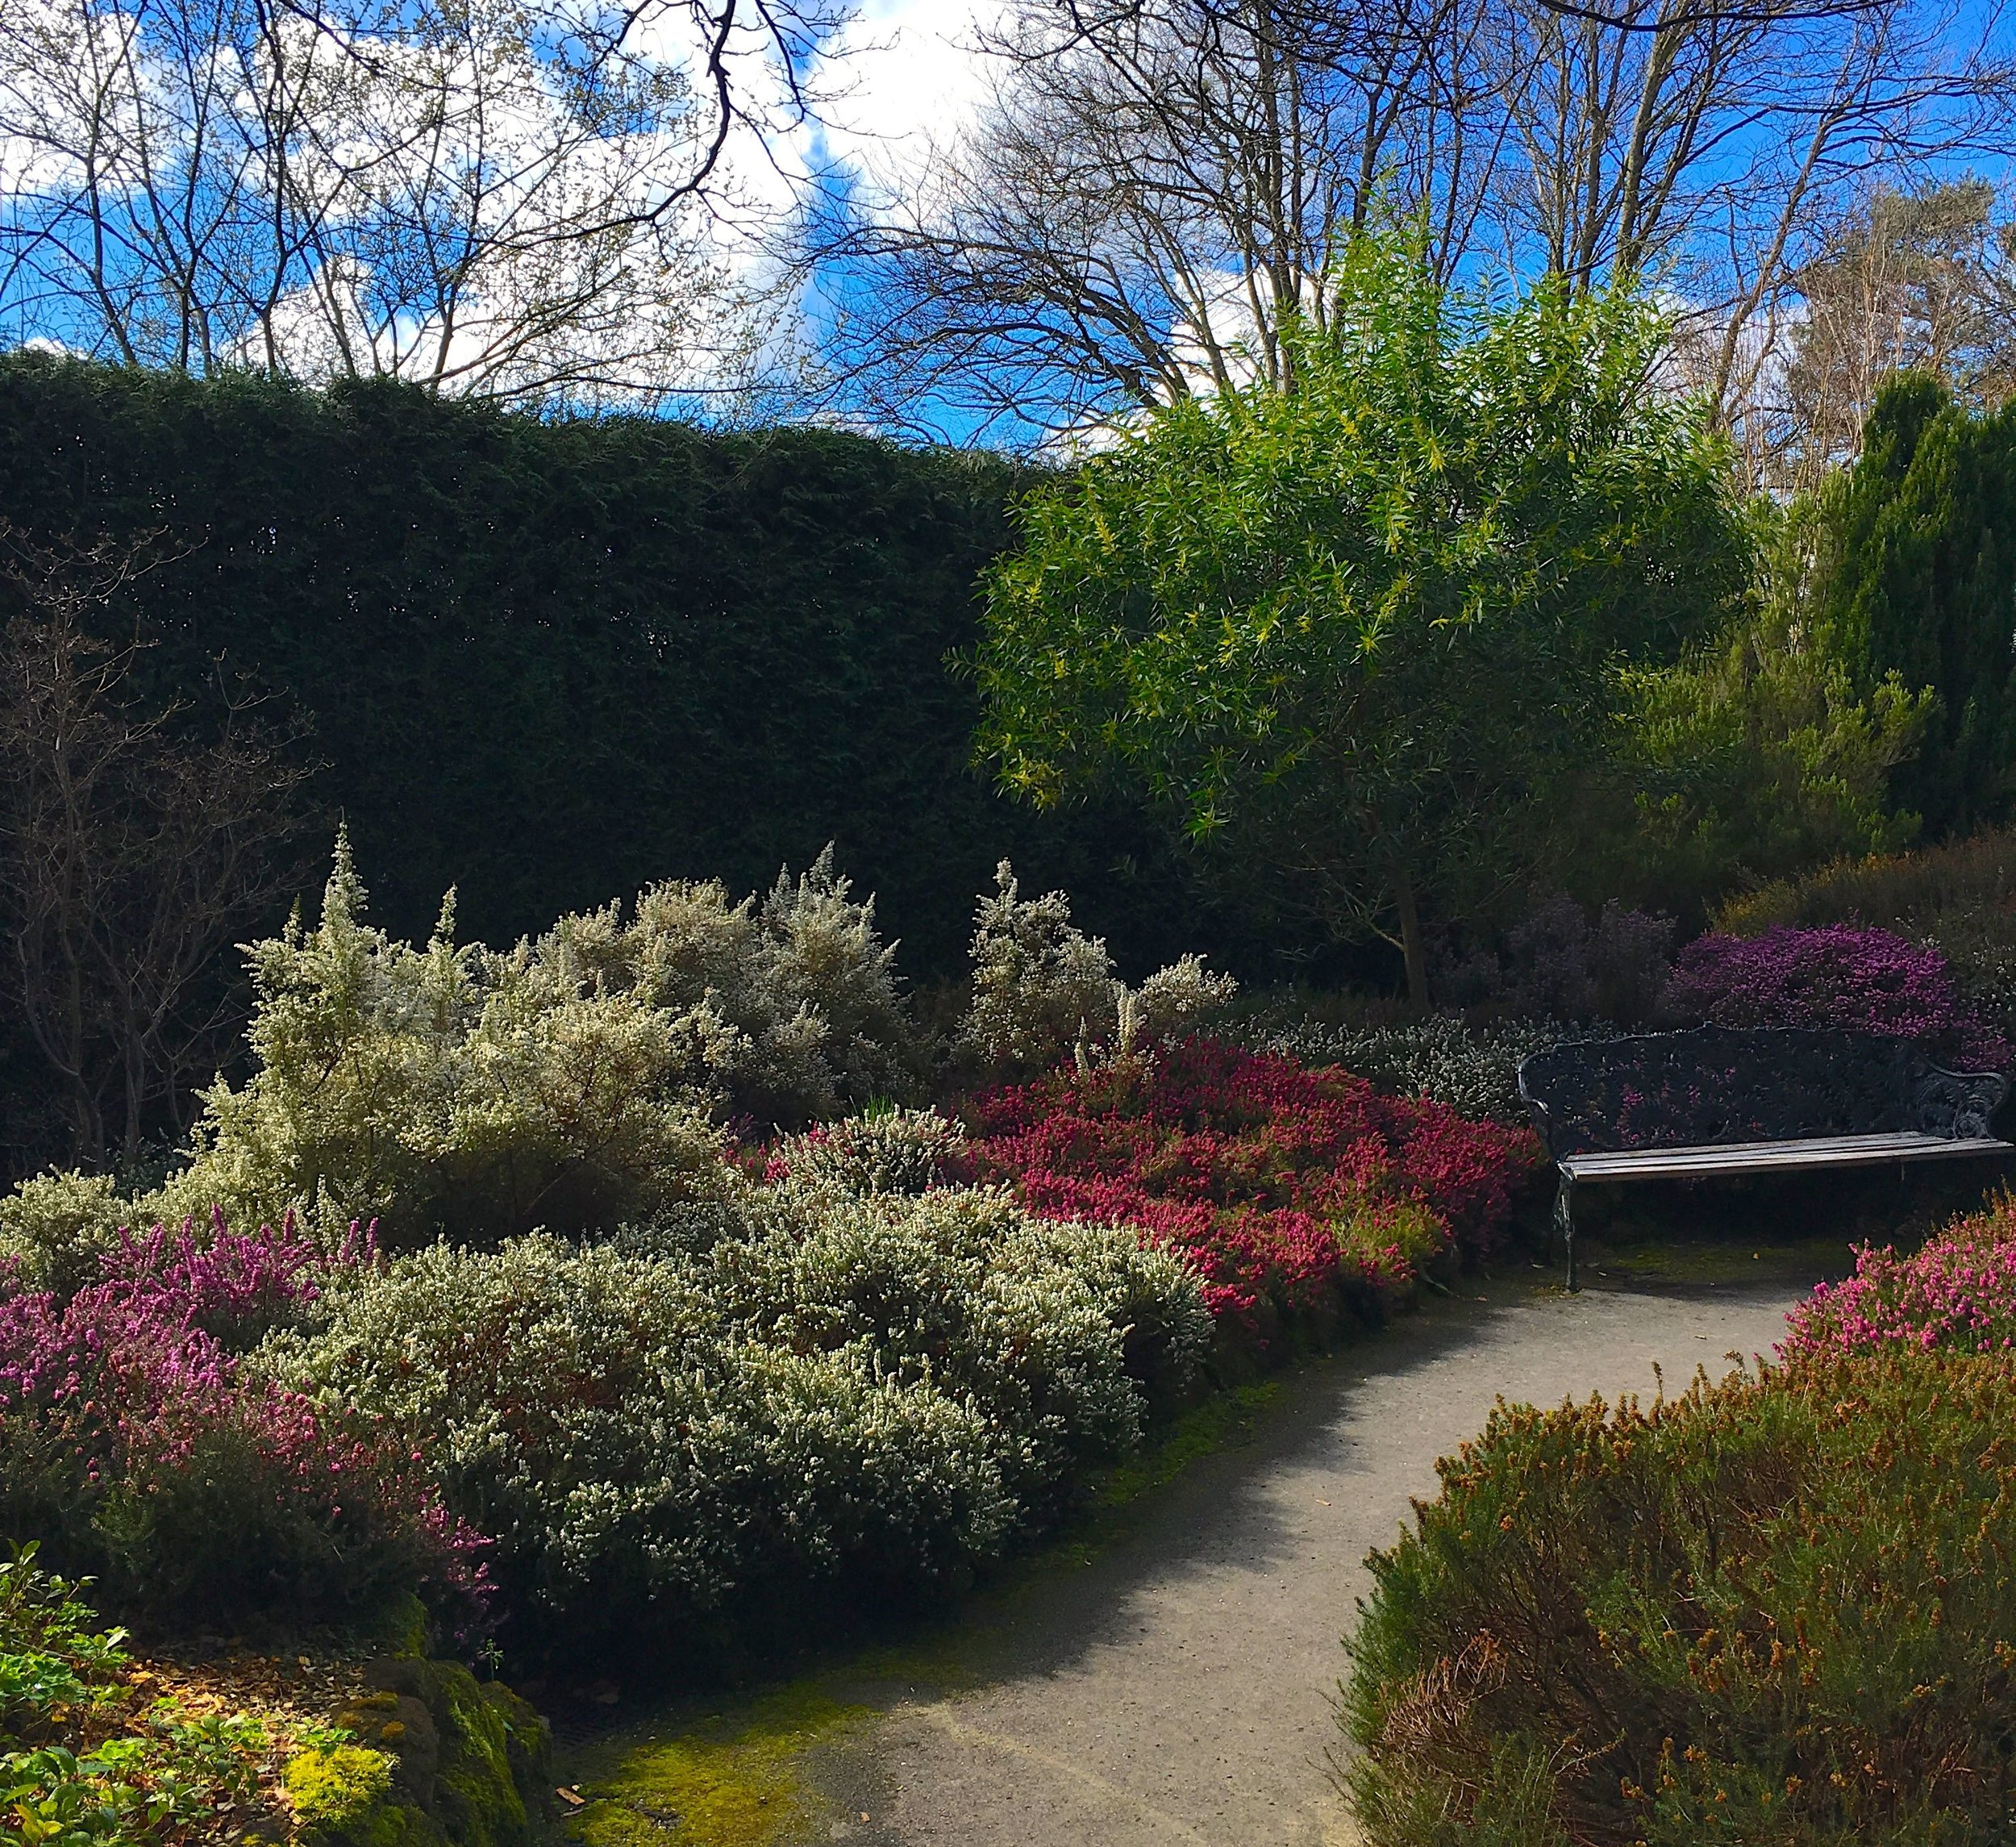 A lovely march day in the Heather Garden at Compton Acres